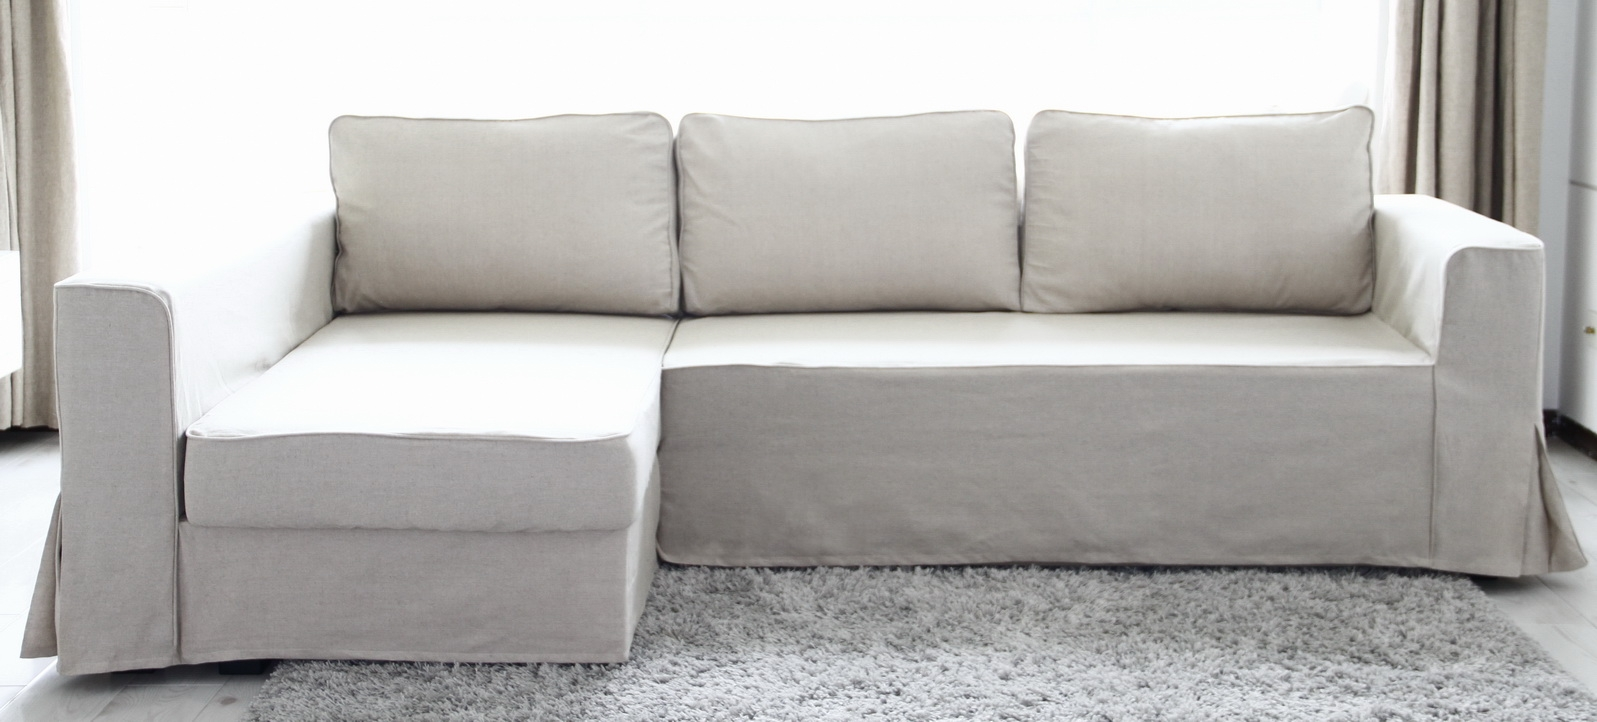 Loose Fit Linen Manstad Sofa Slipcovers Now Available Within Chaise Sofa Covers (View 1 of 12)